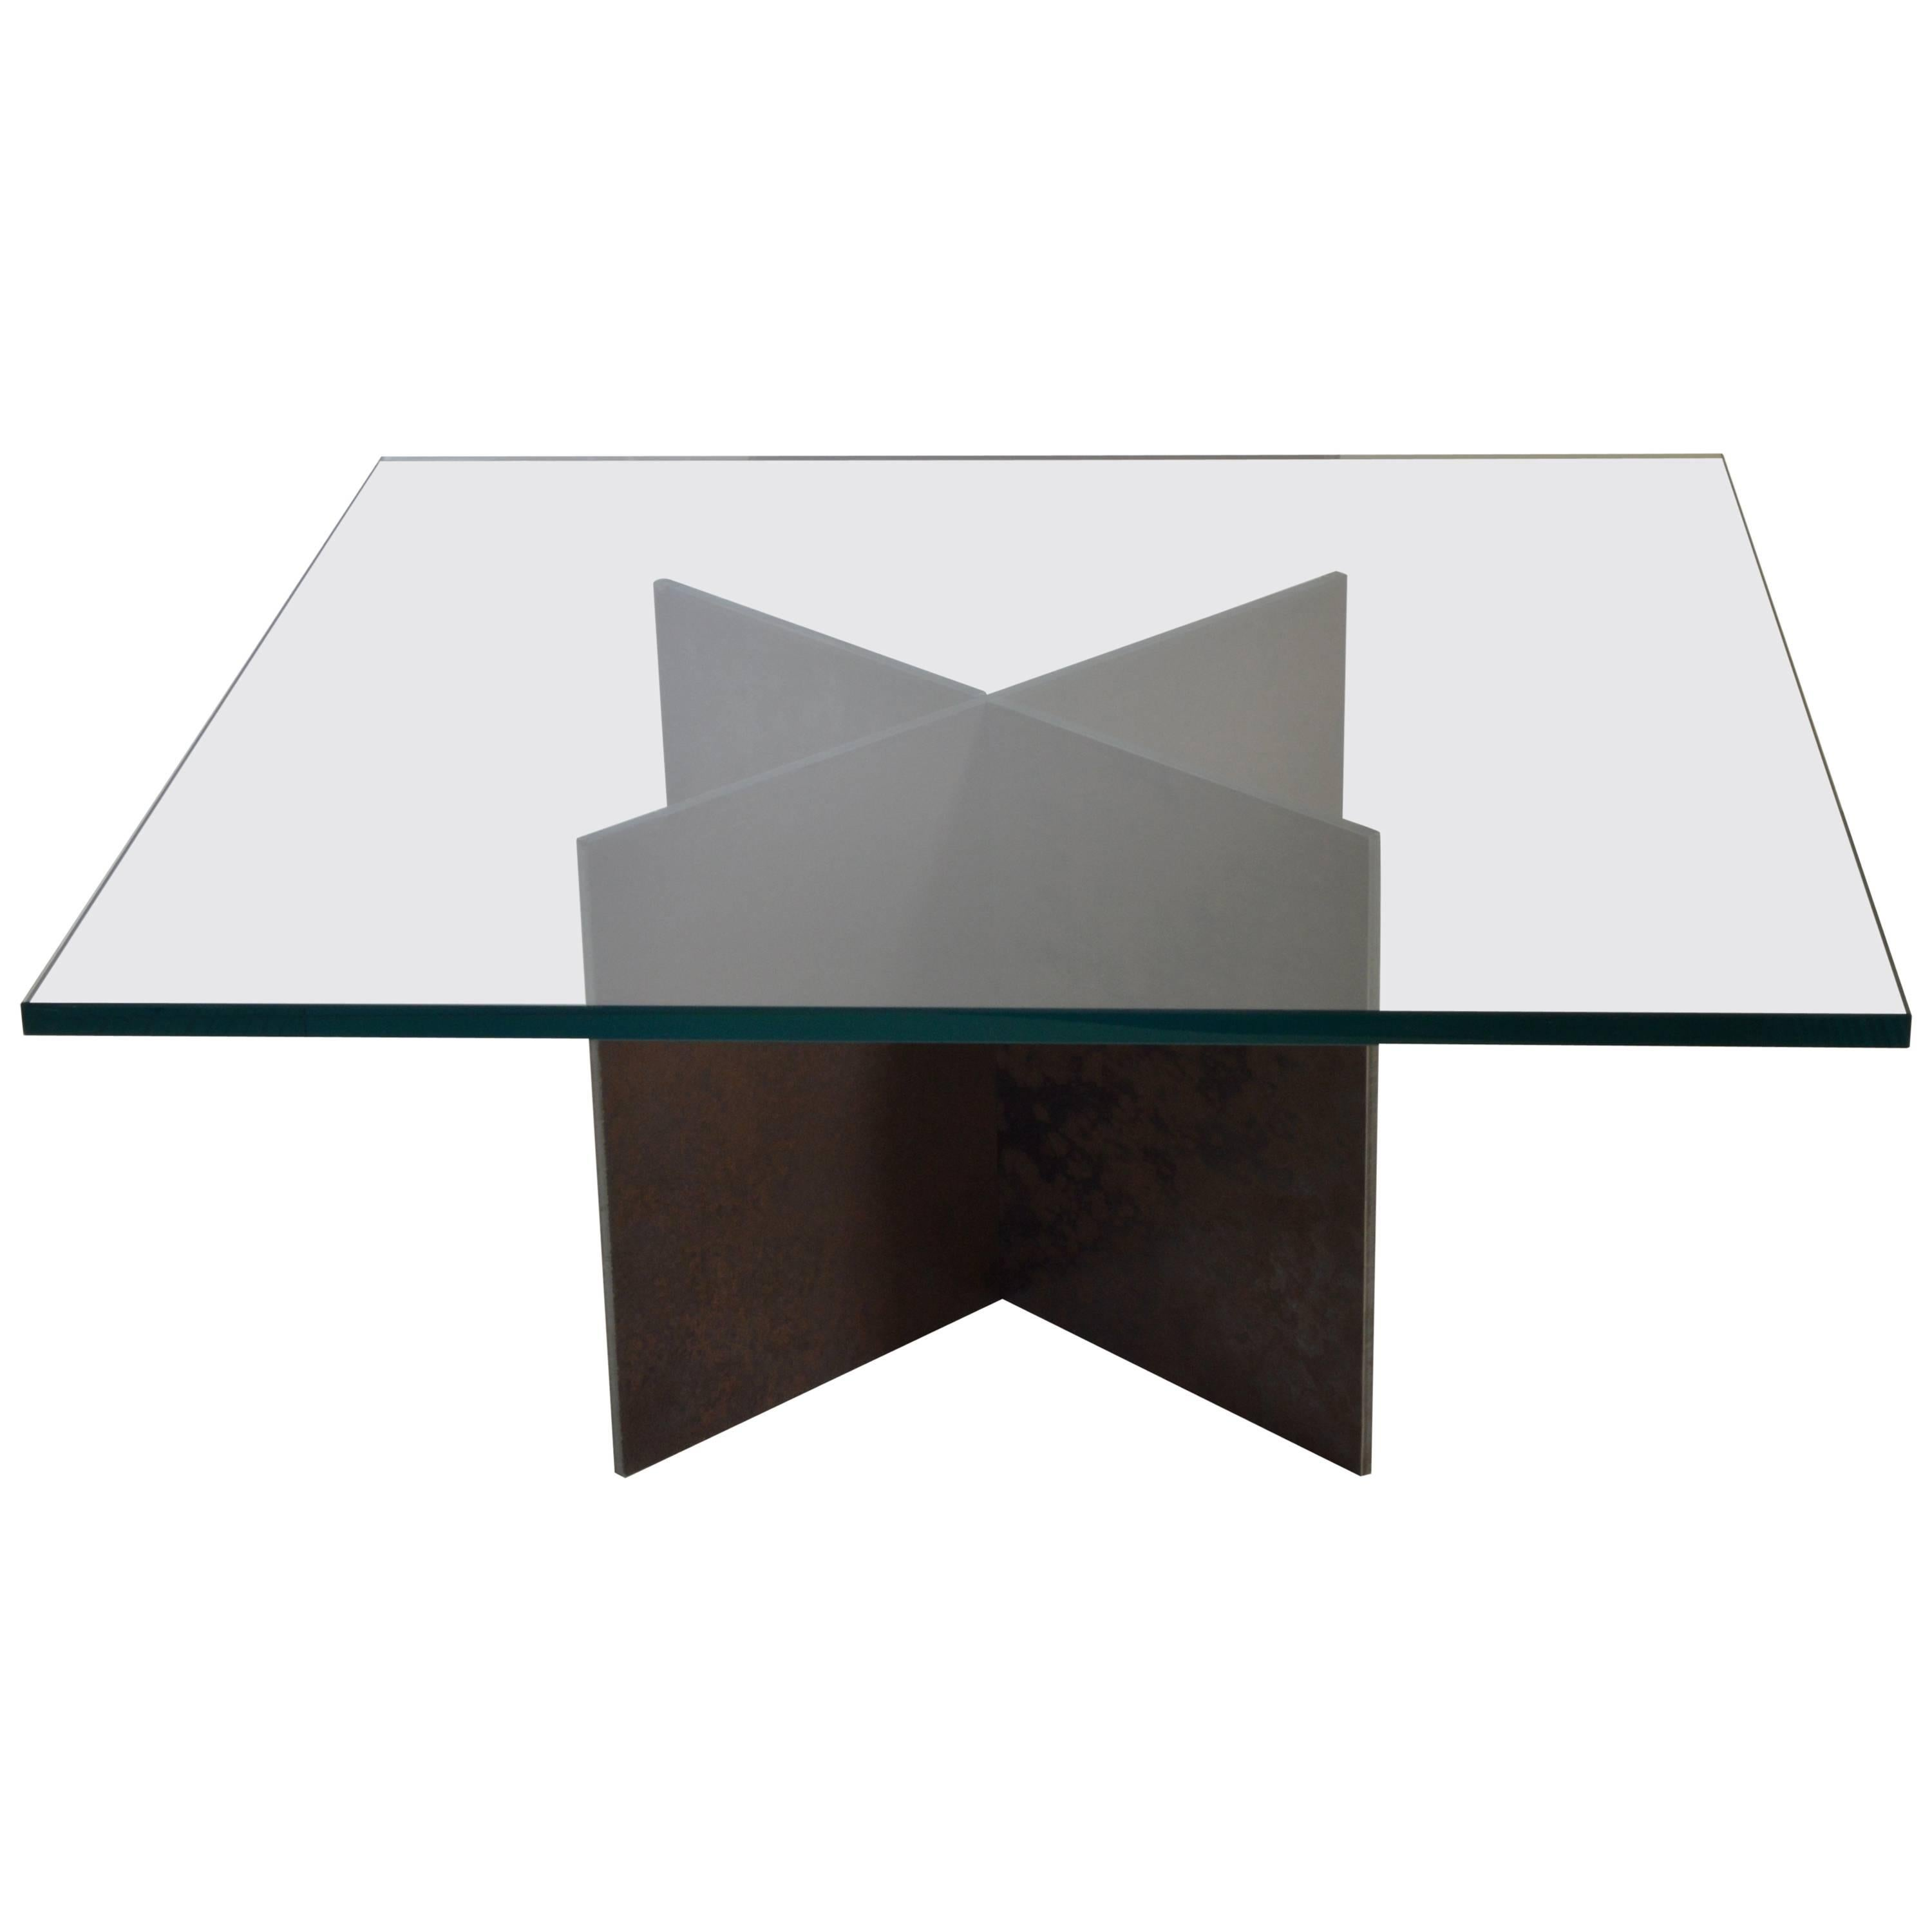 Contemporary Minimalist Patinated Steel and Glass Coffee Table by Scott Gordon